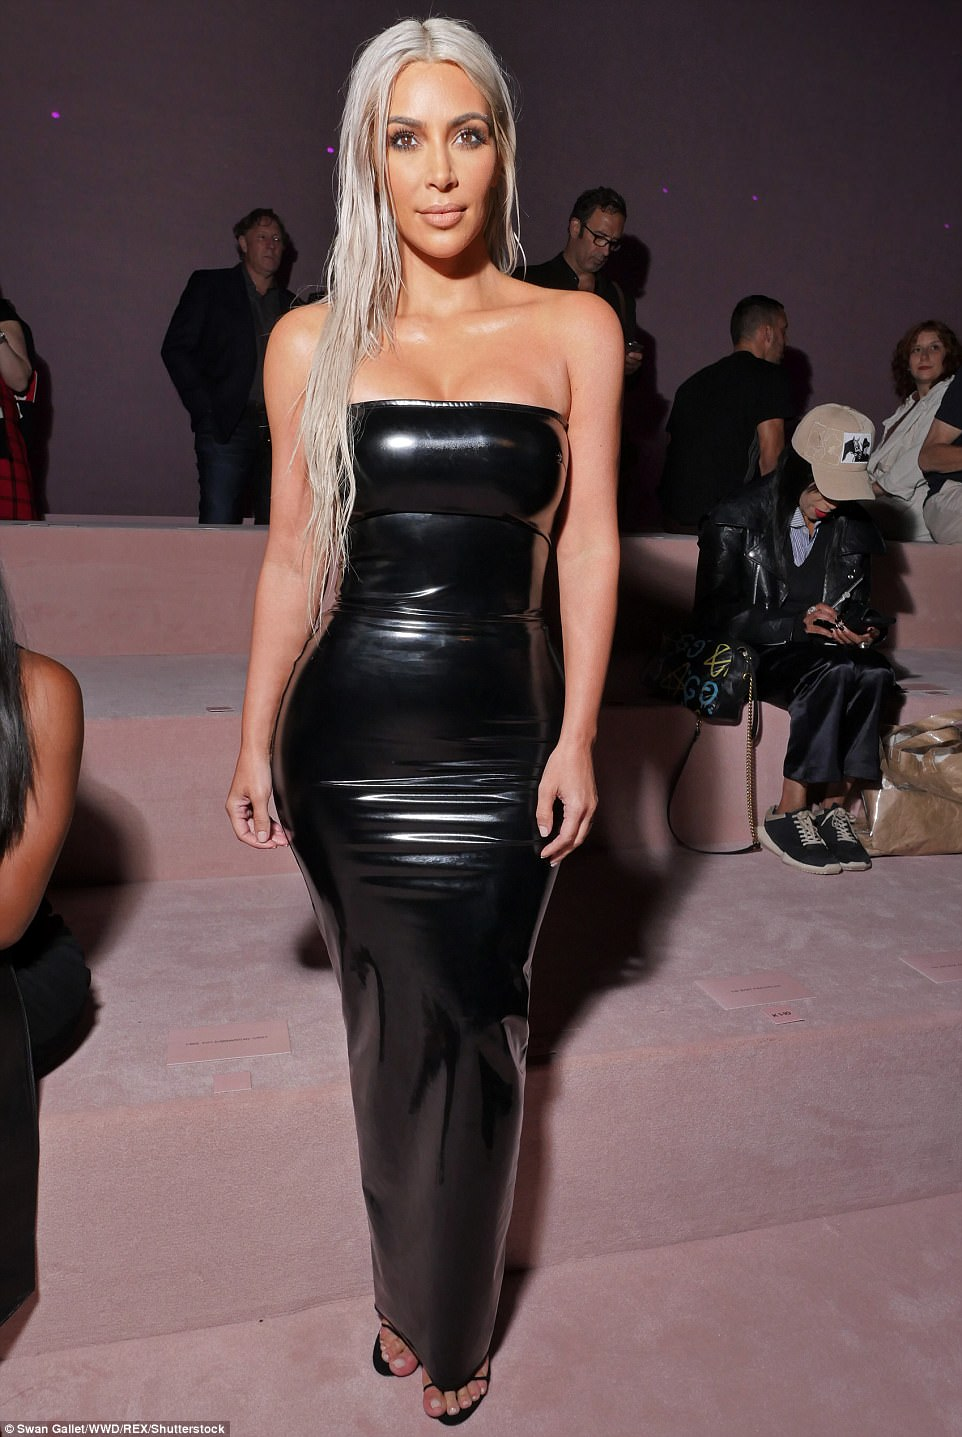 Kim Kardashian Goes Blonde In Sexy Leather Outfit For Tom -6110